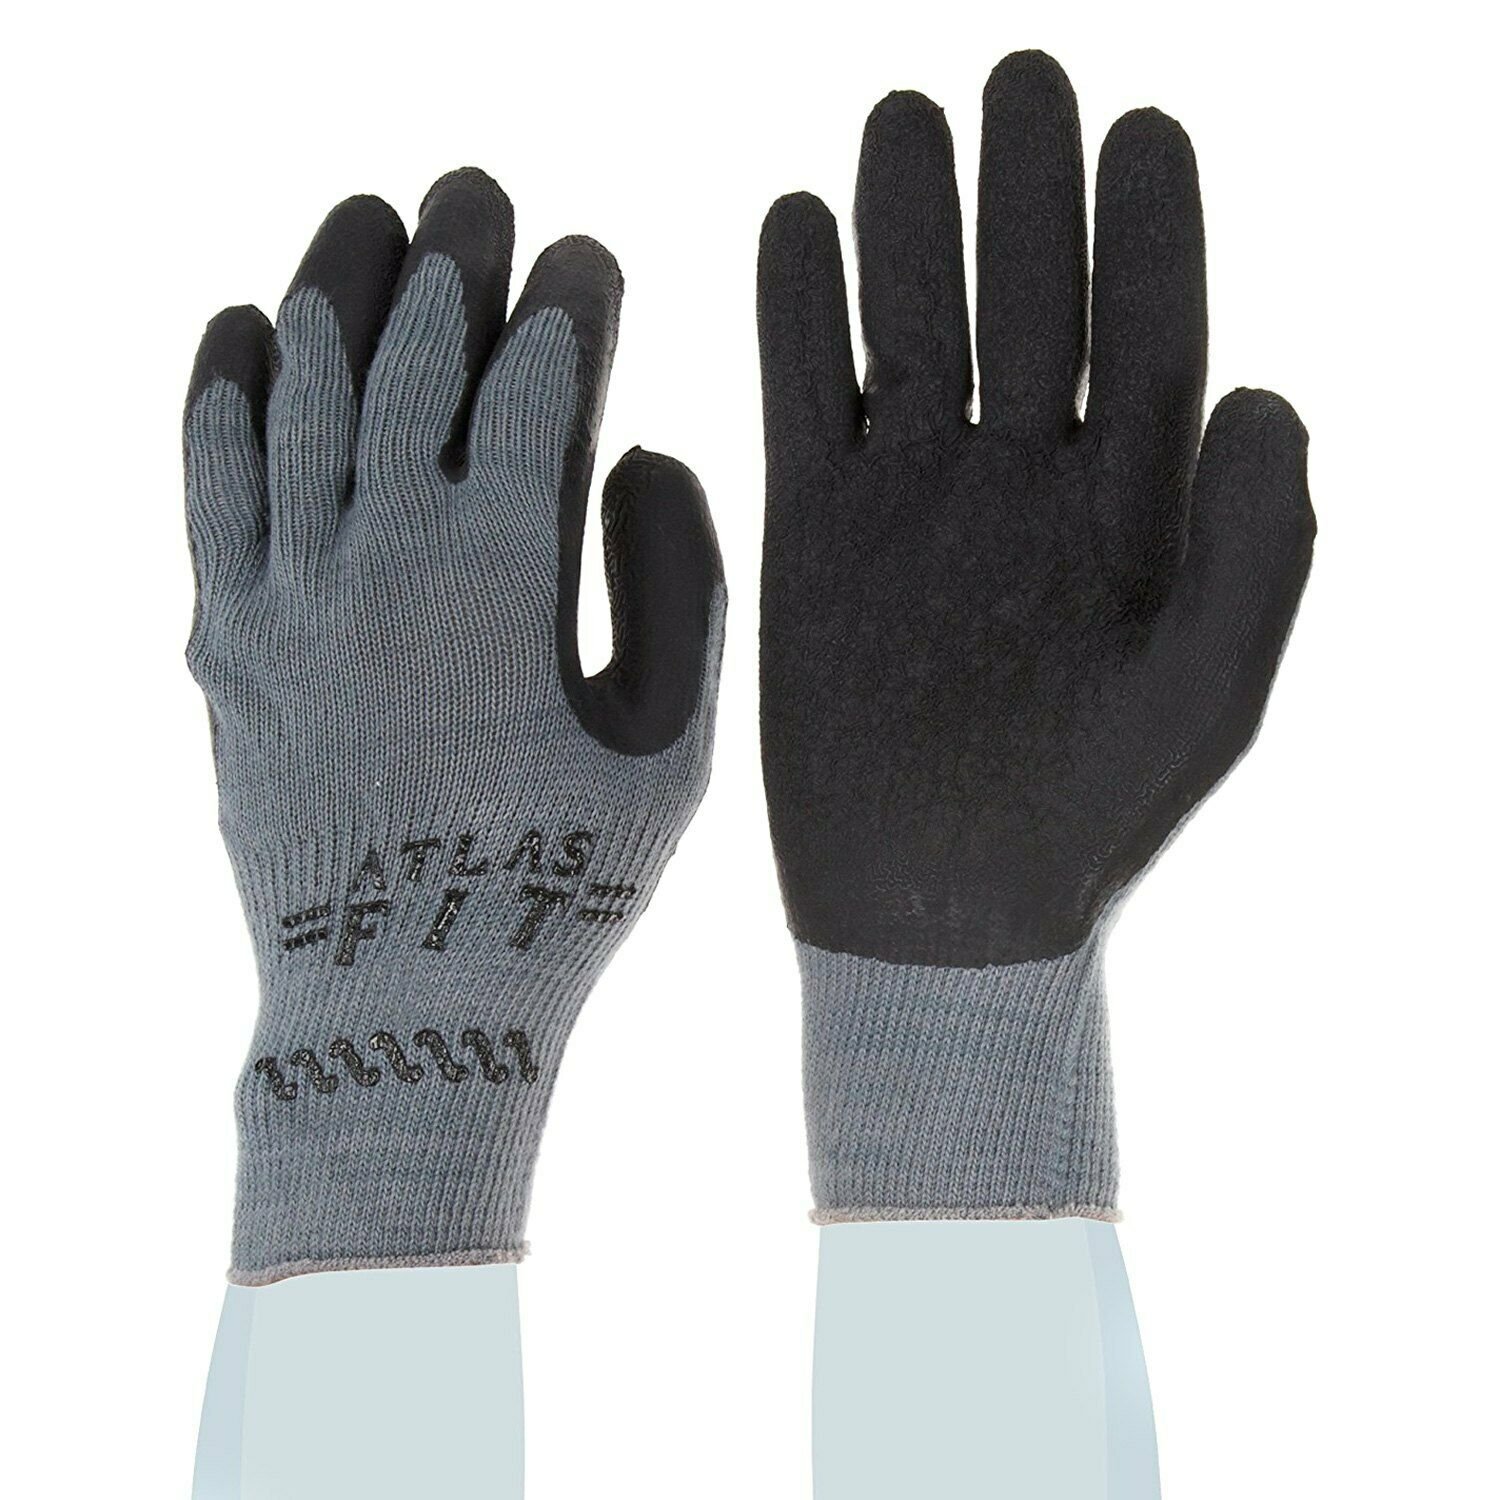 Showa Best Atlas 300B Black Rubber Dipped Work Gloves, Various Quantities & Size Business & Industrial